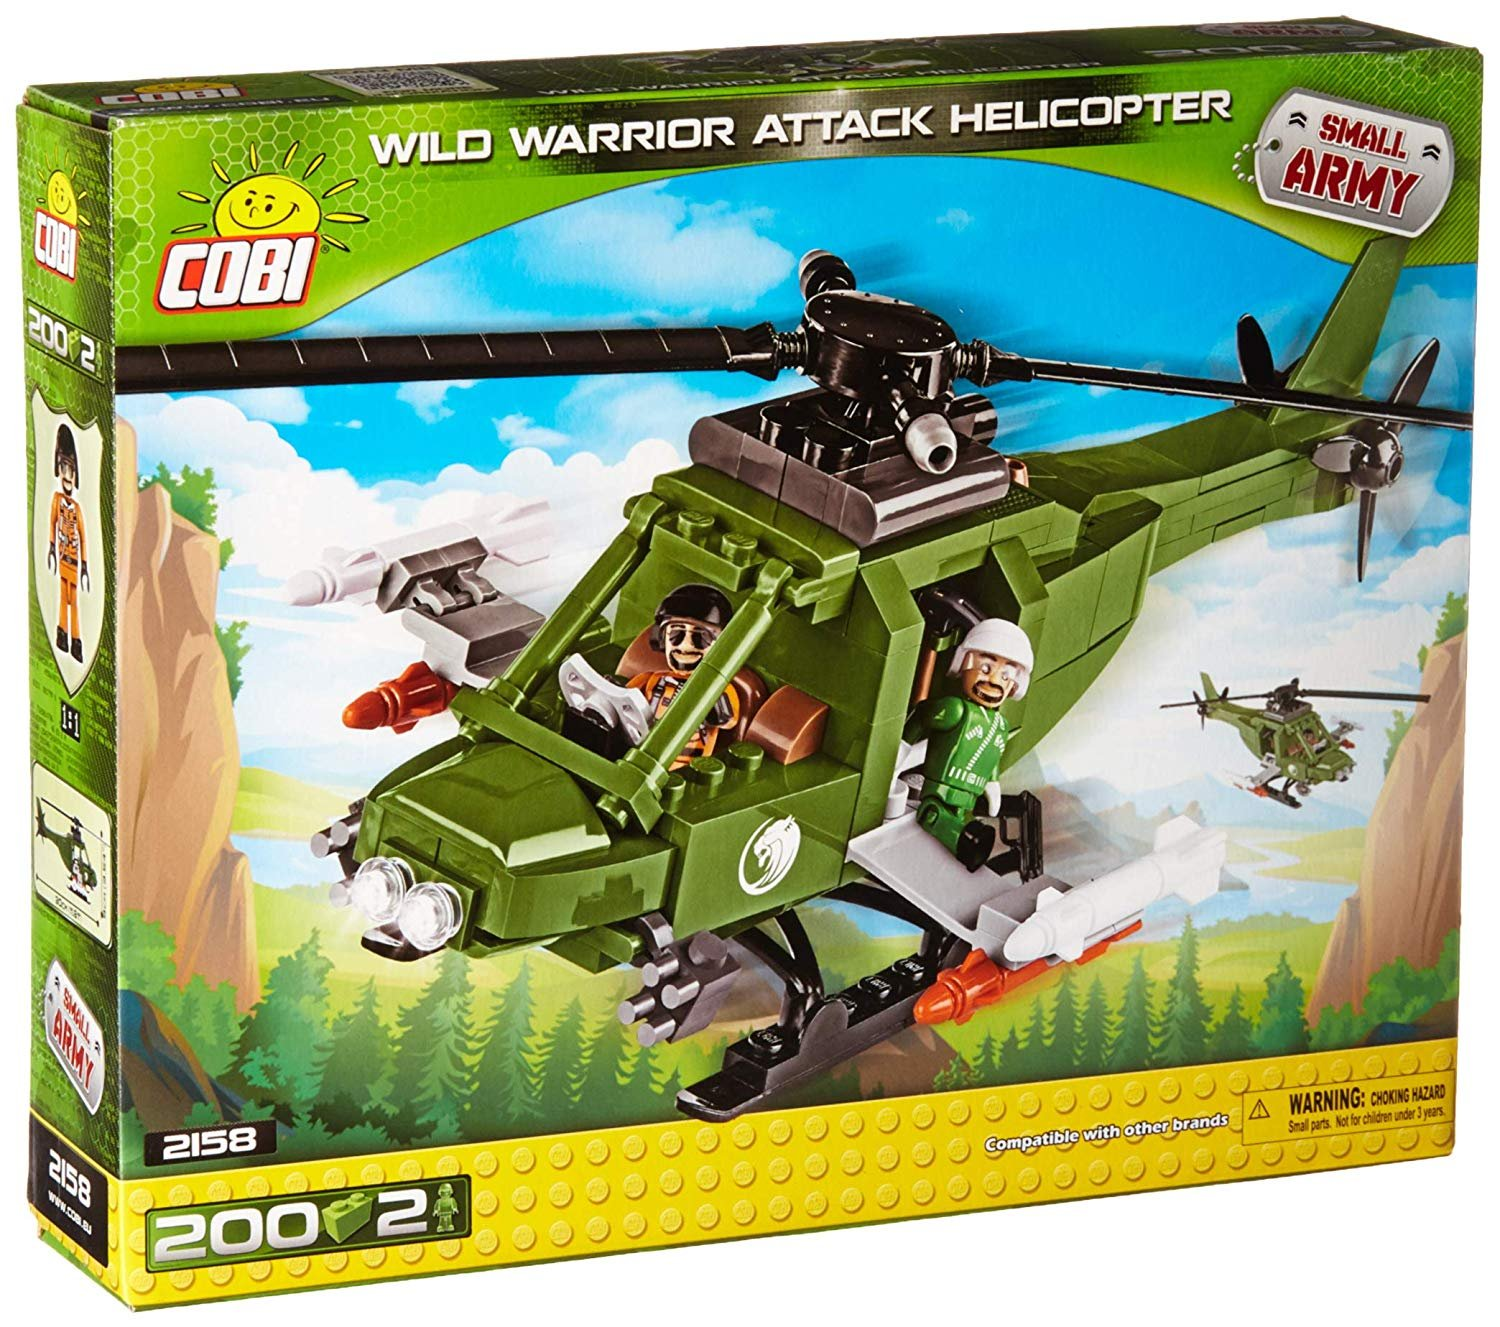 Cobi Wild Warrior Attack Helicopter Army Building Set